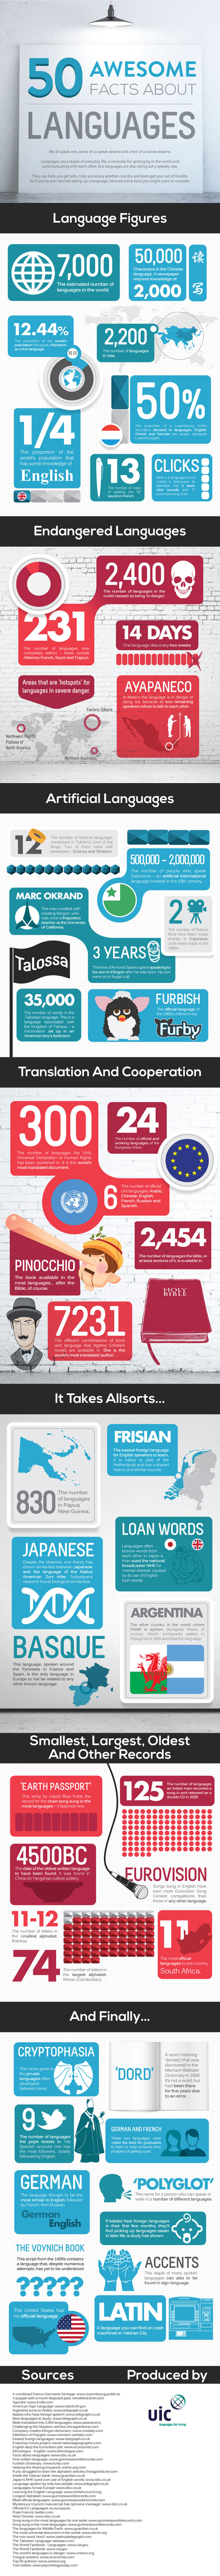 What to Know About Languages-Infographic